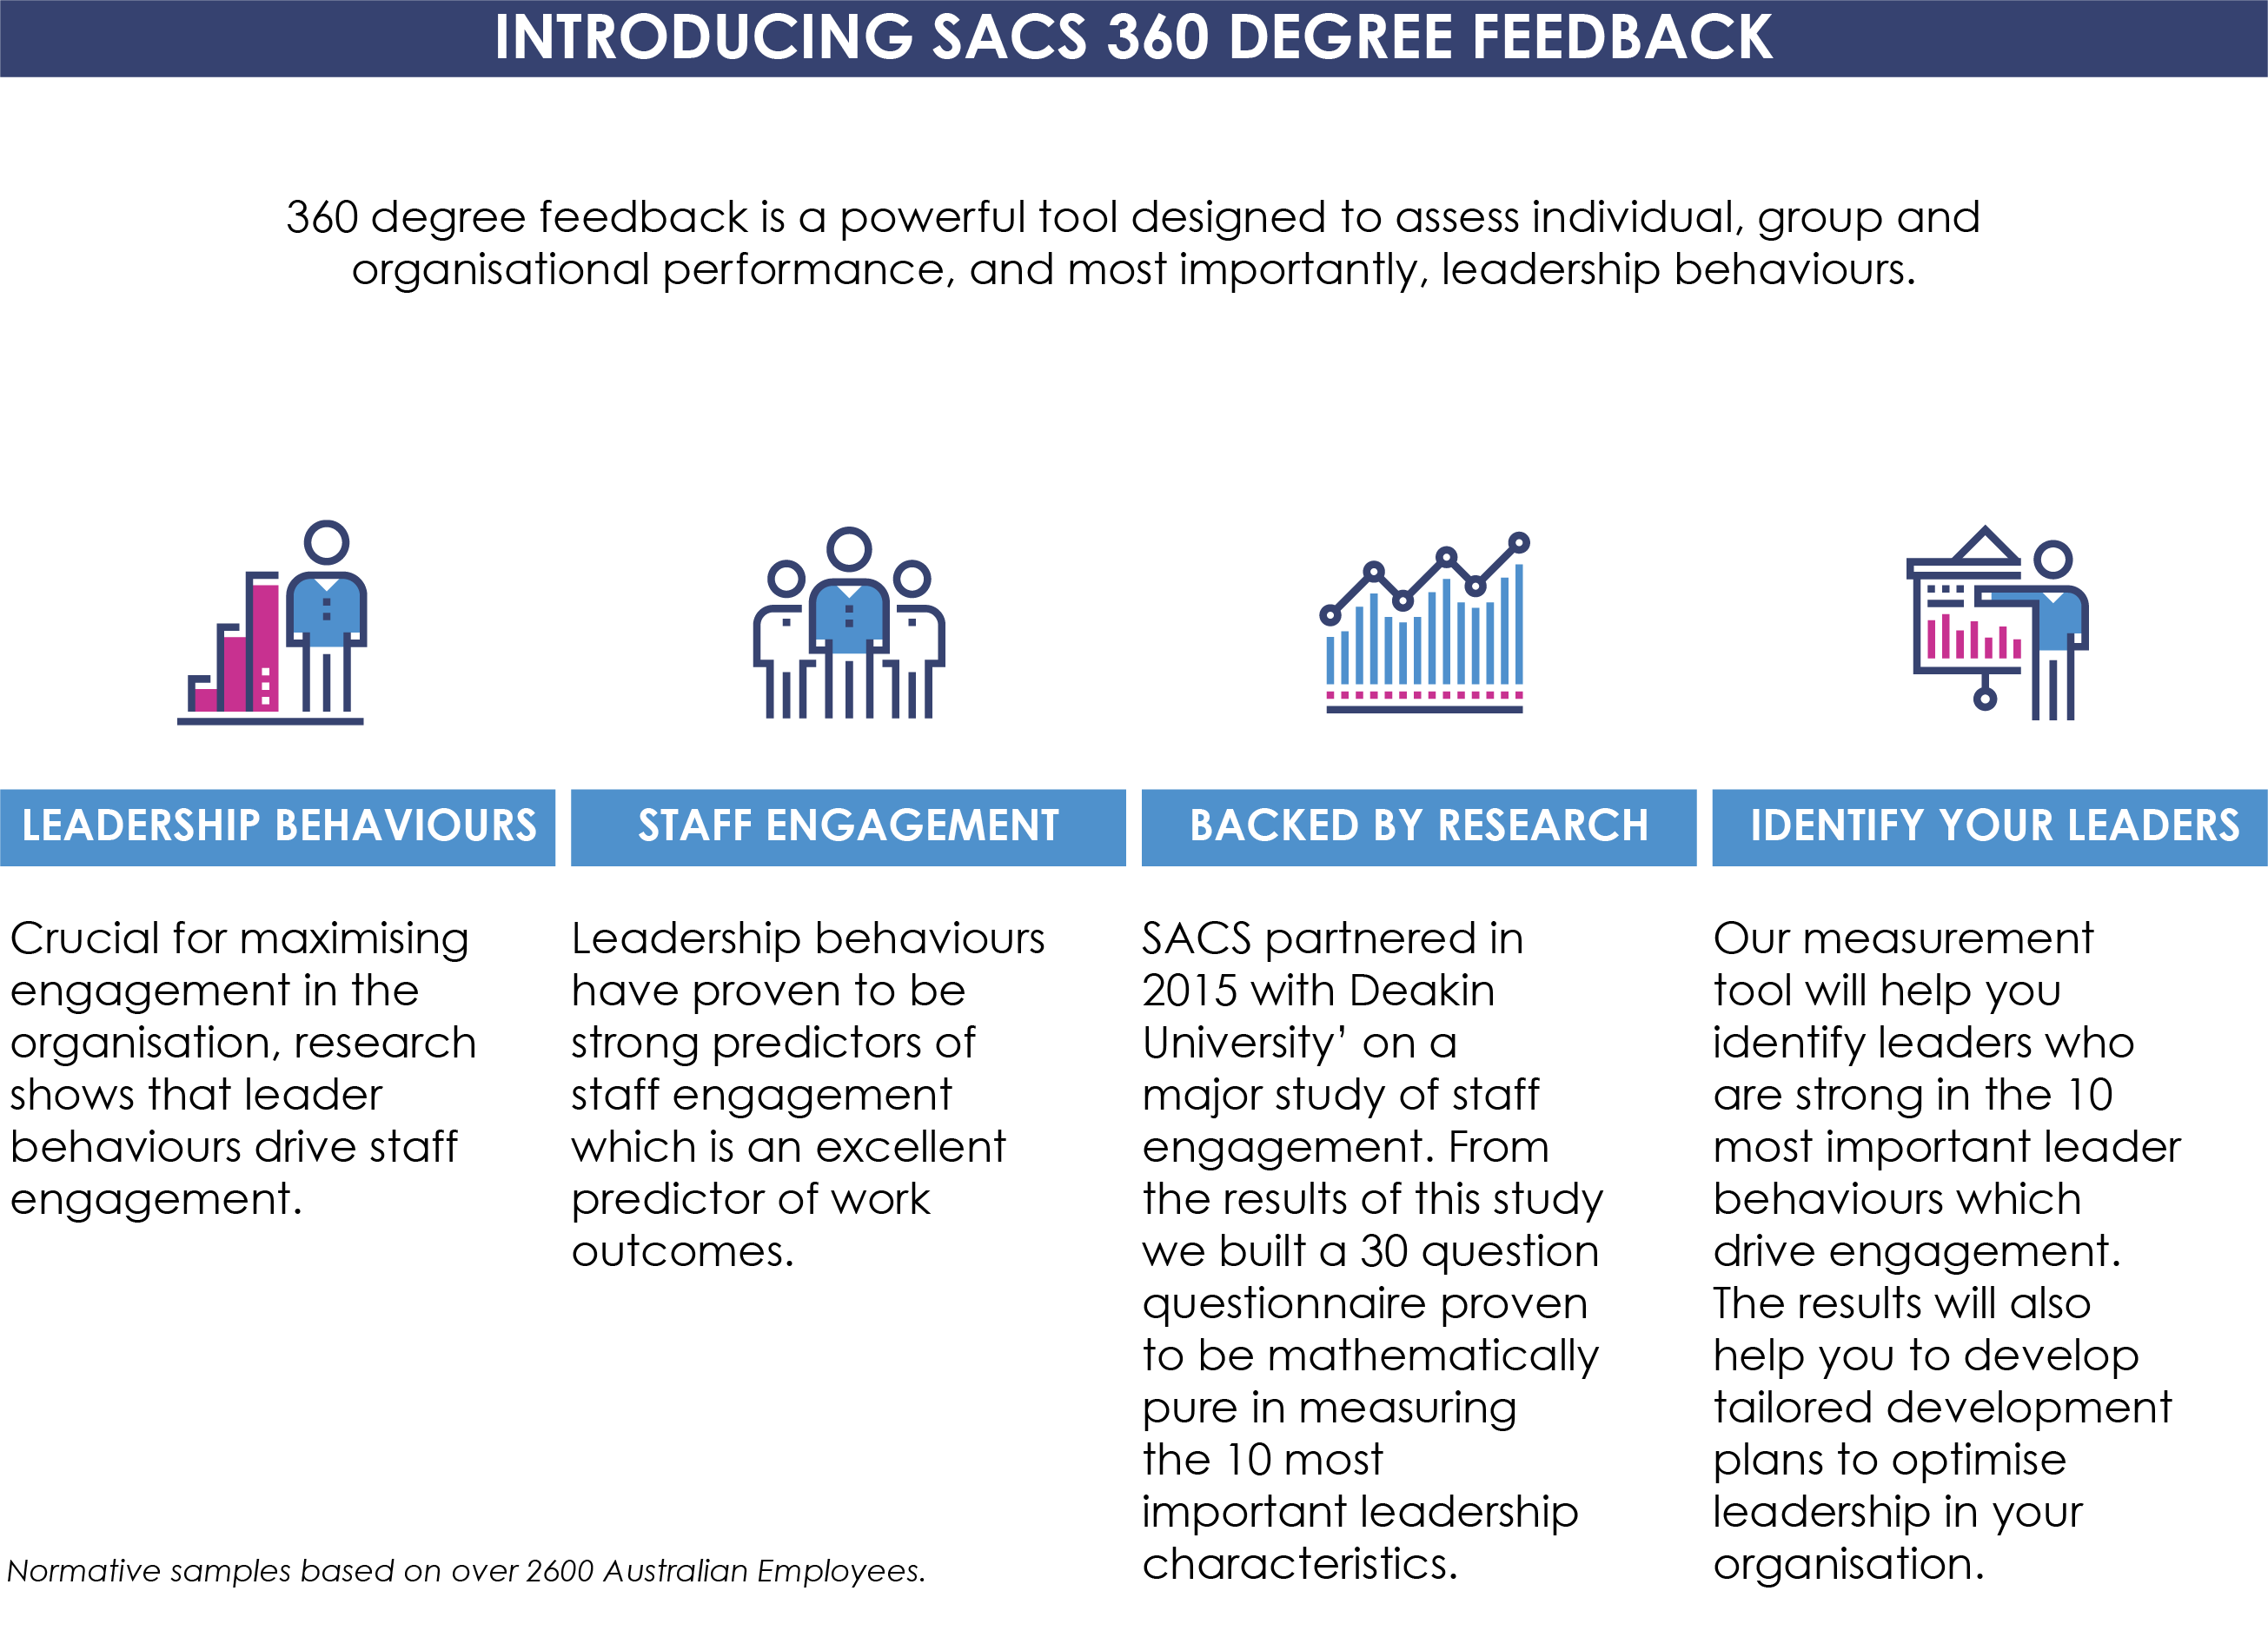 sacs 360 degree feedback example